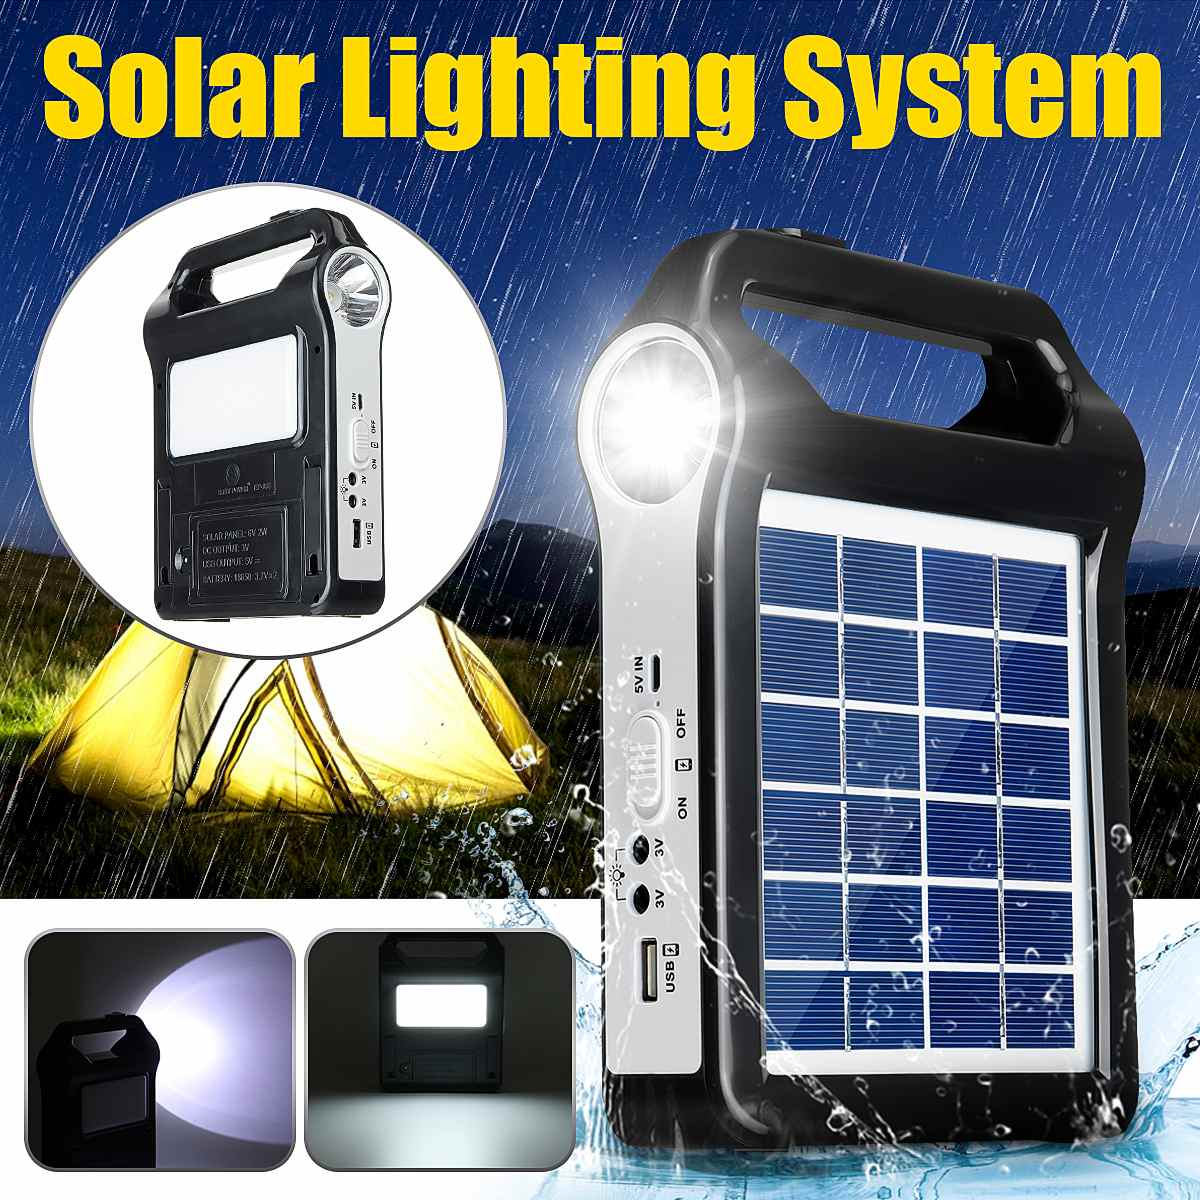 USB Charger 6V Solar Panel Power Storage Generator Home System Kit Rechargeable 9W Portable Solar Generator System